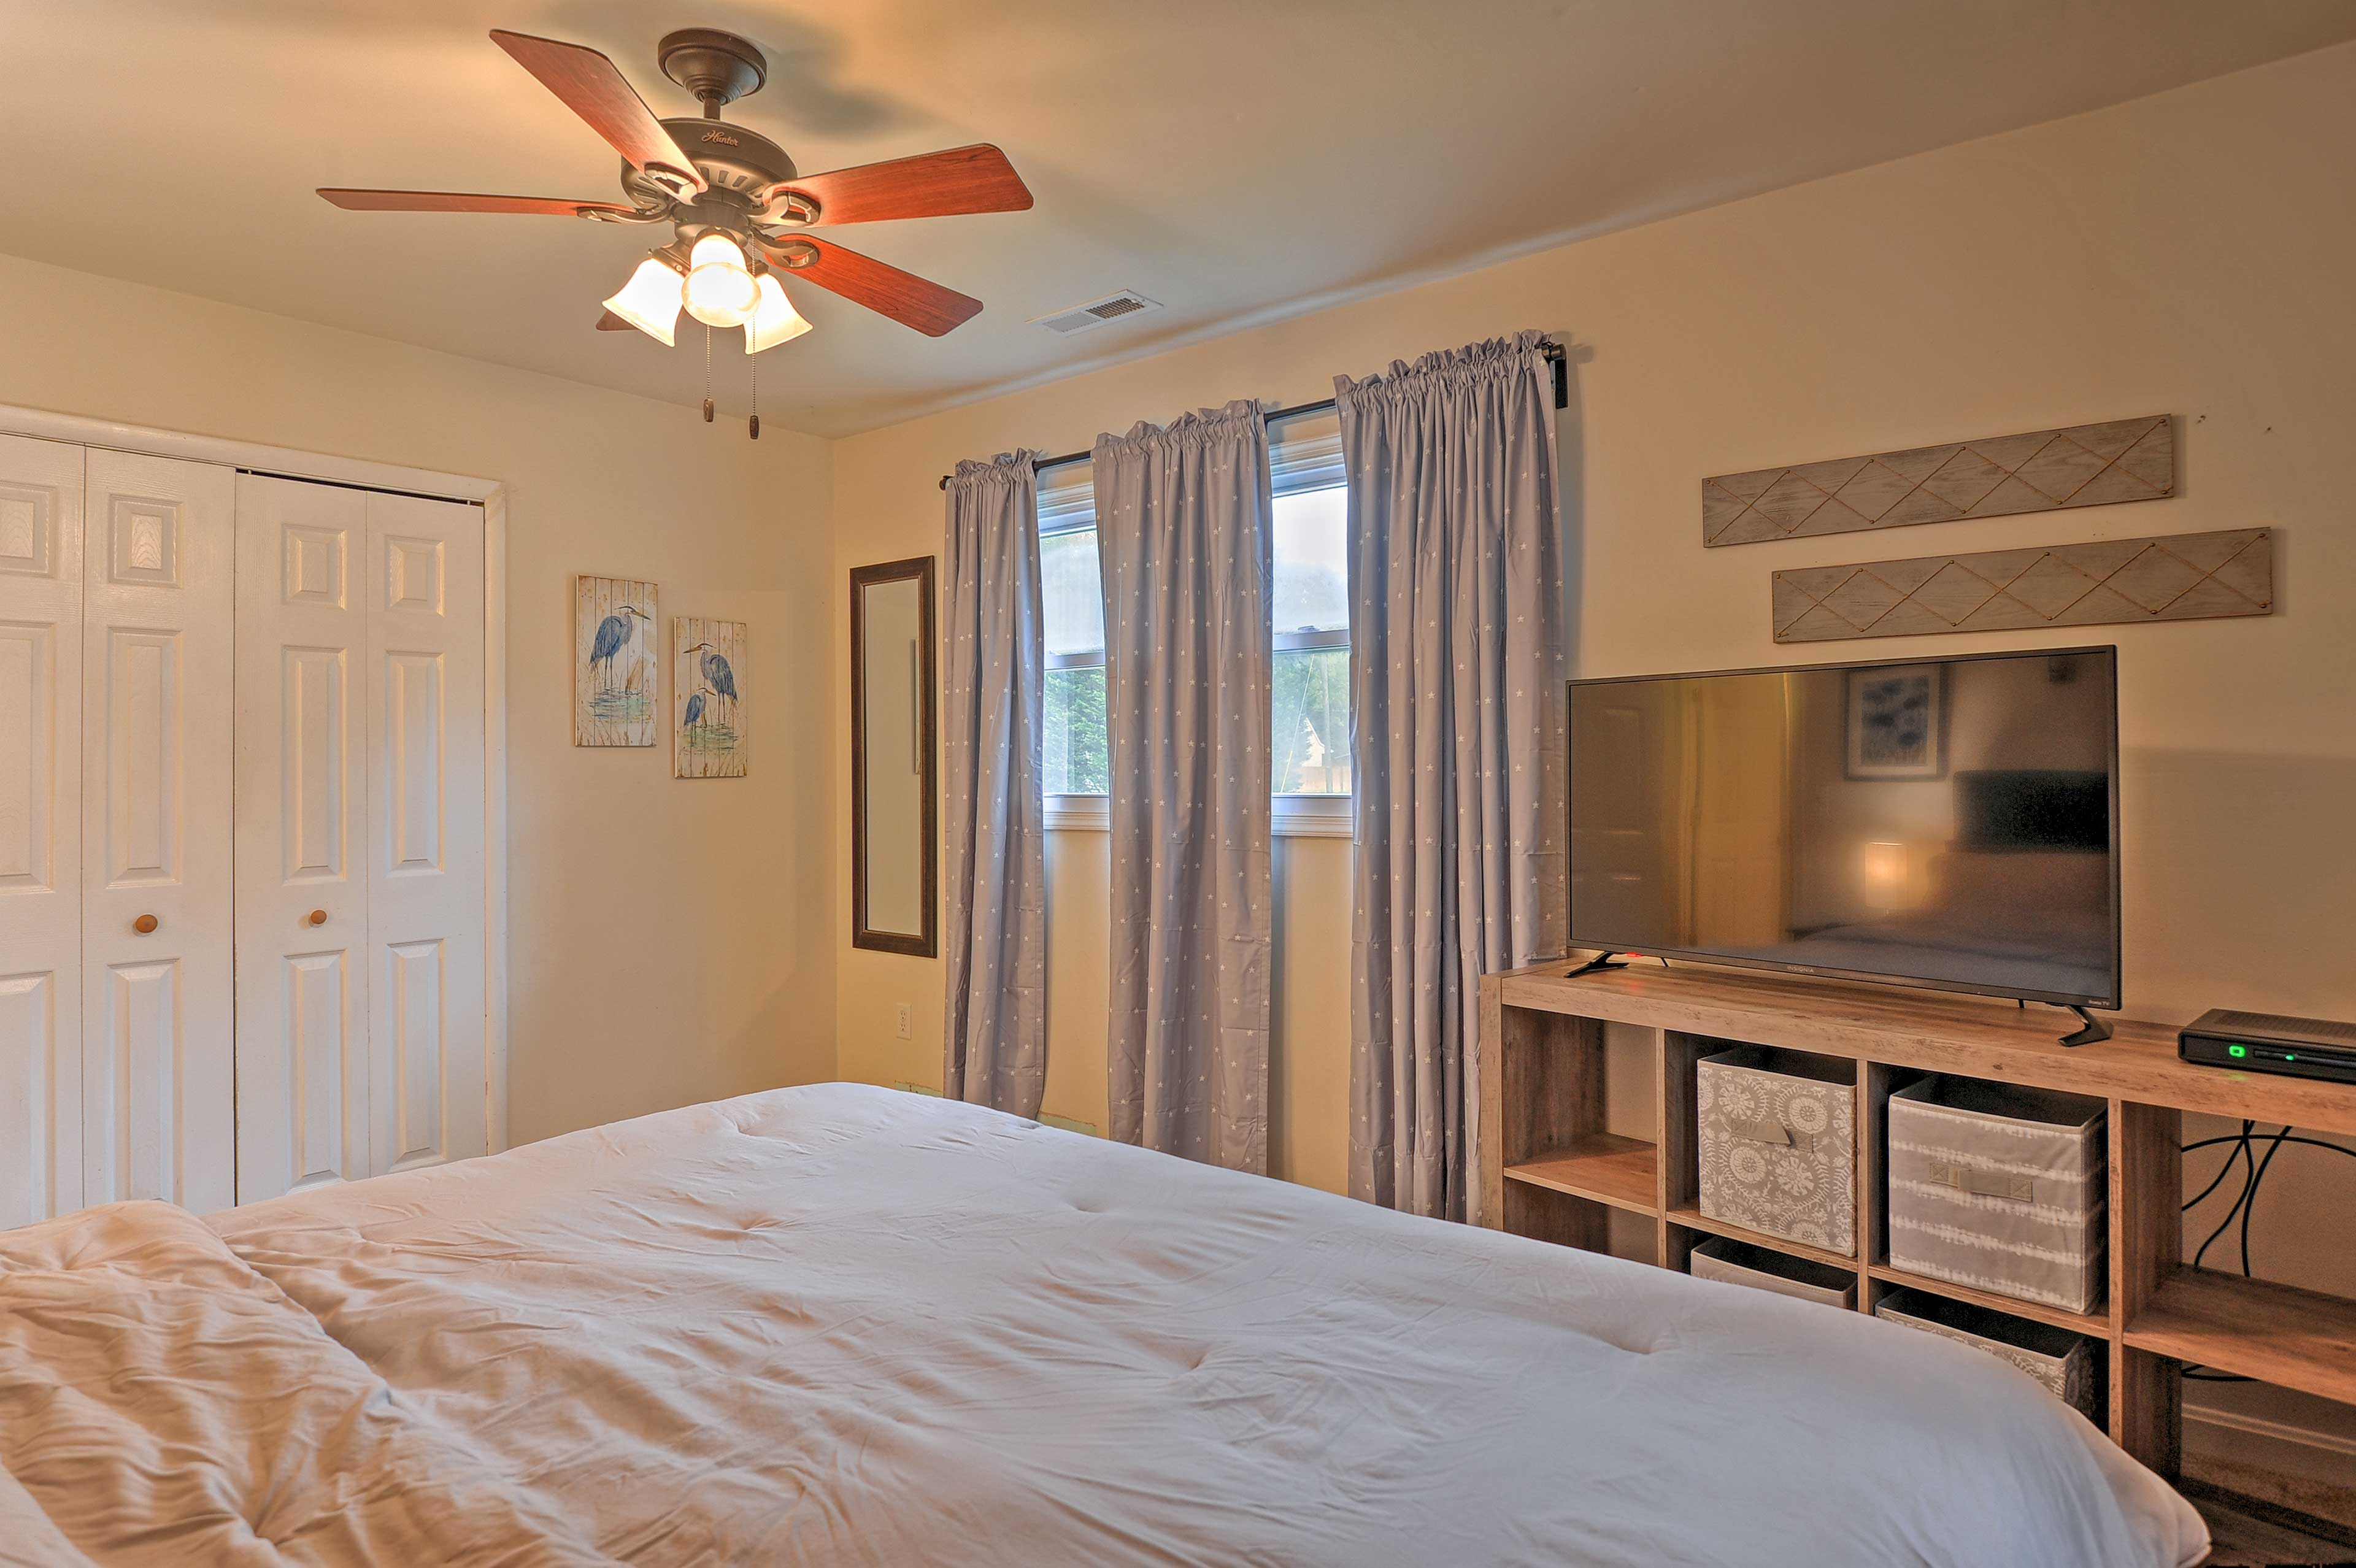 Ceiling fans keep you cool at night!